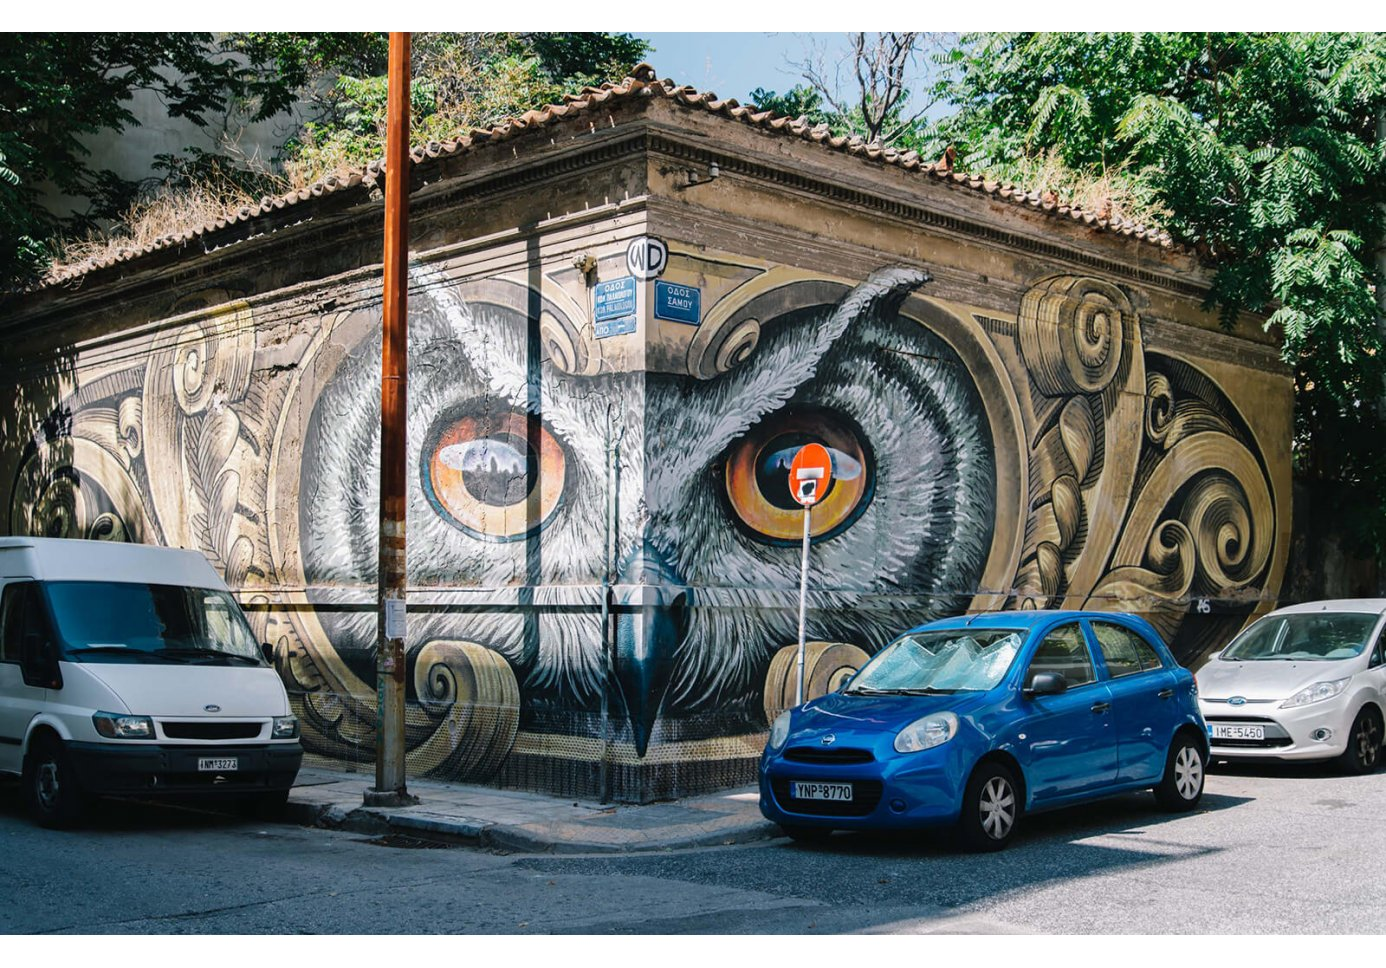 Graffiti of an owl's face on corner of two walls and 3 parked cars.